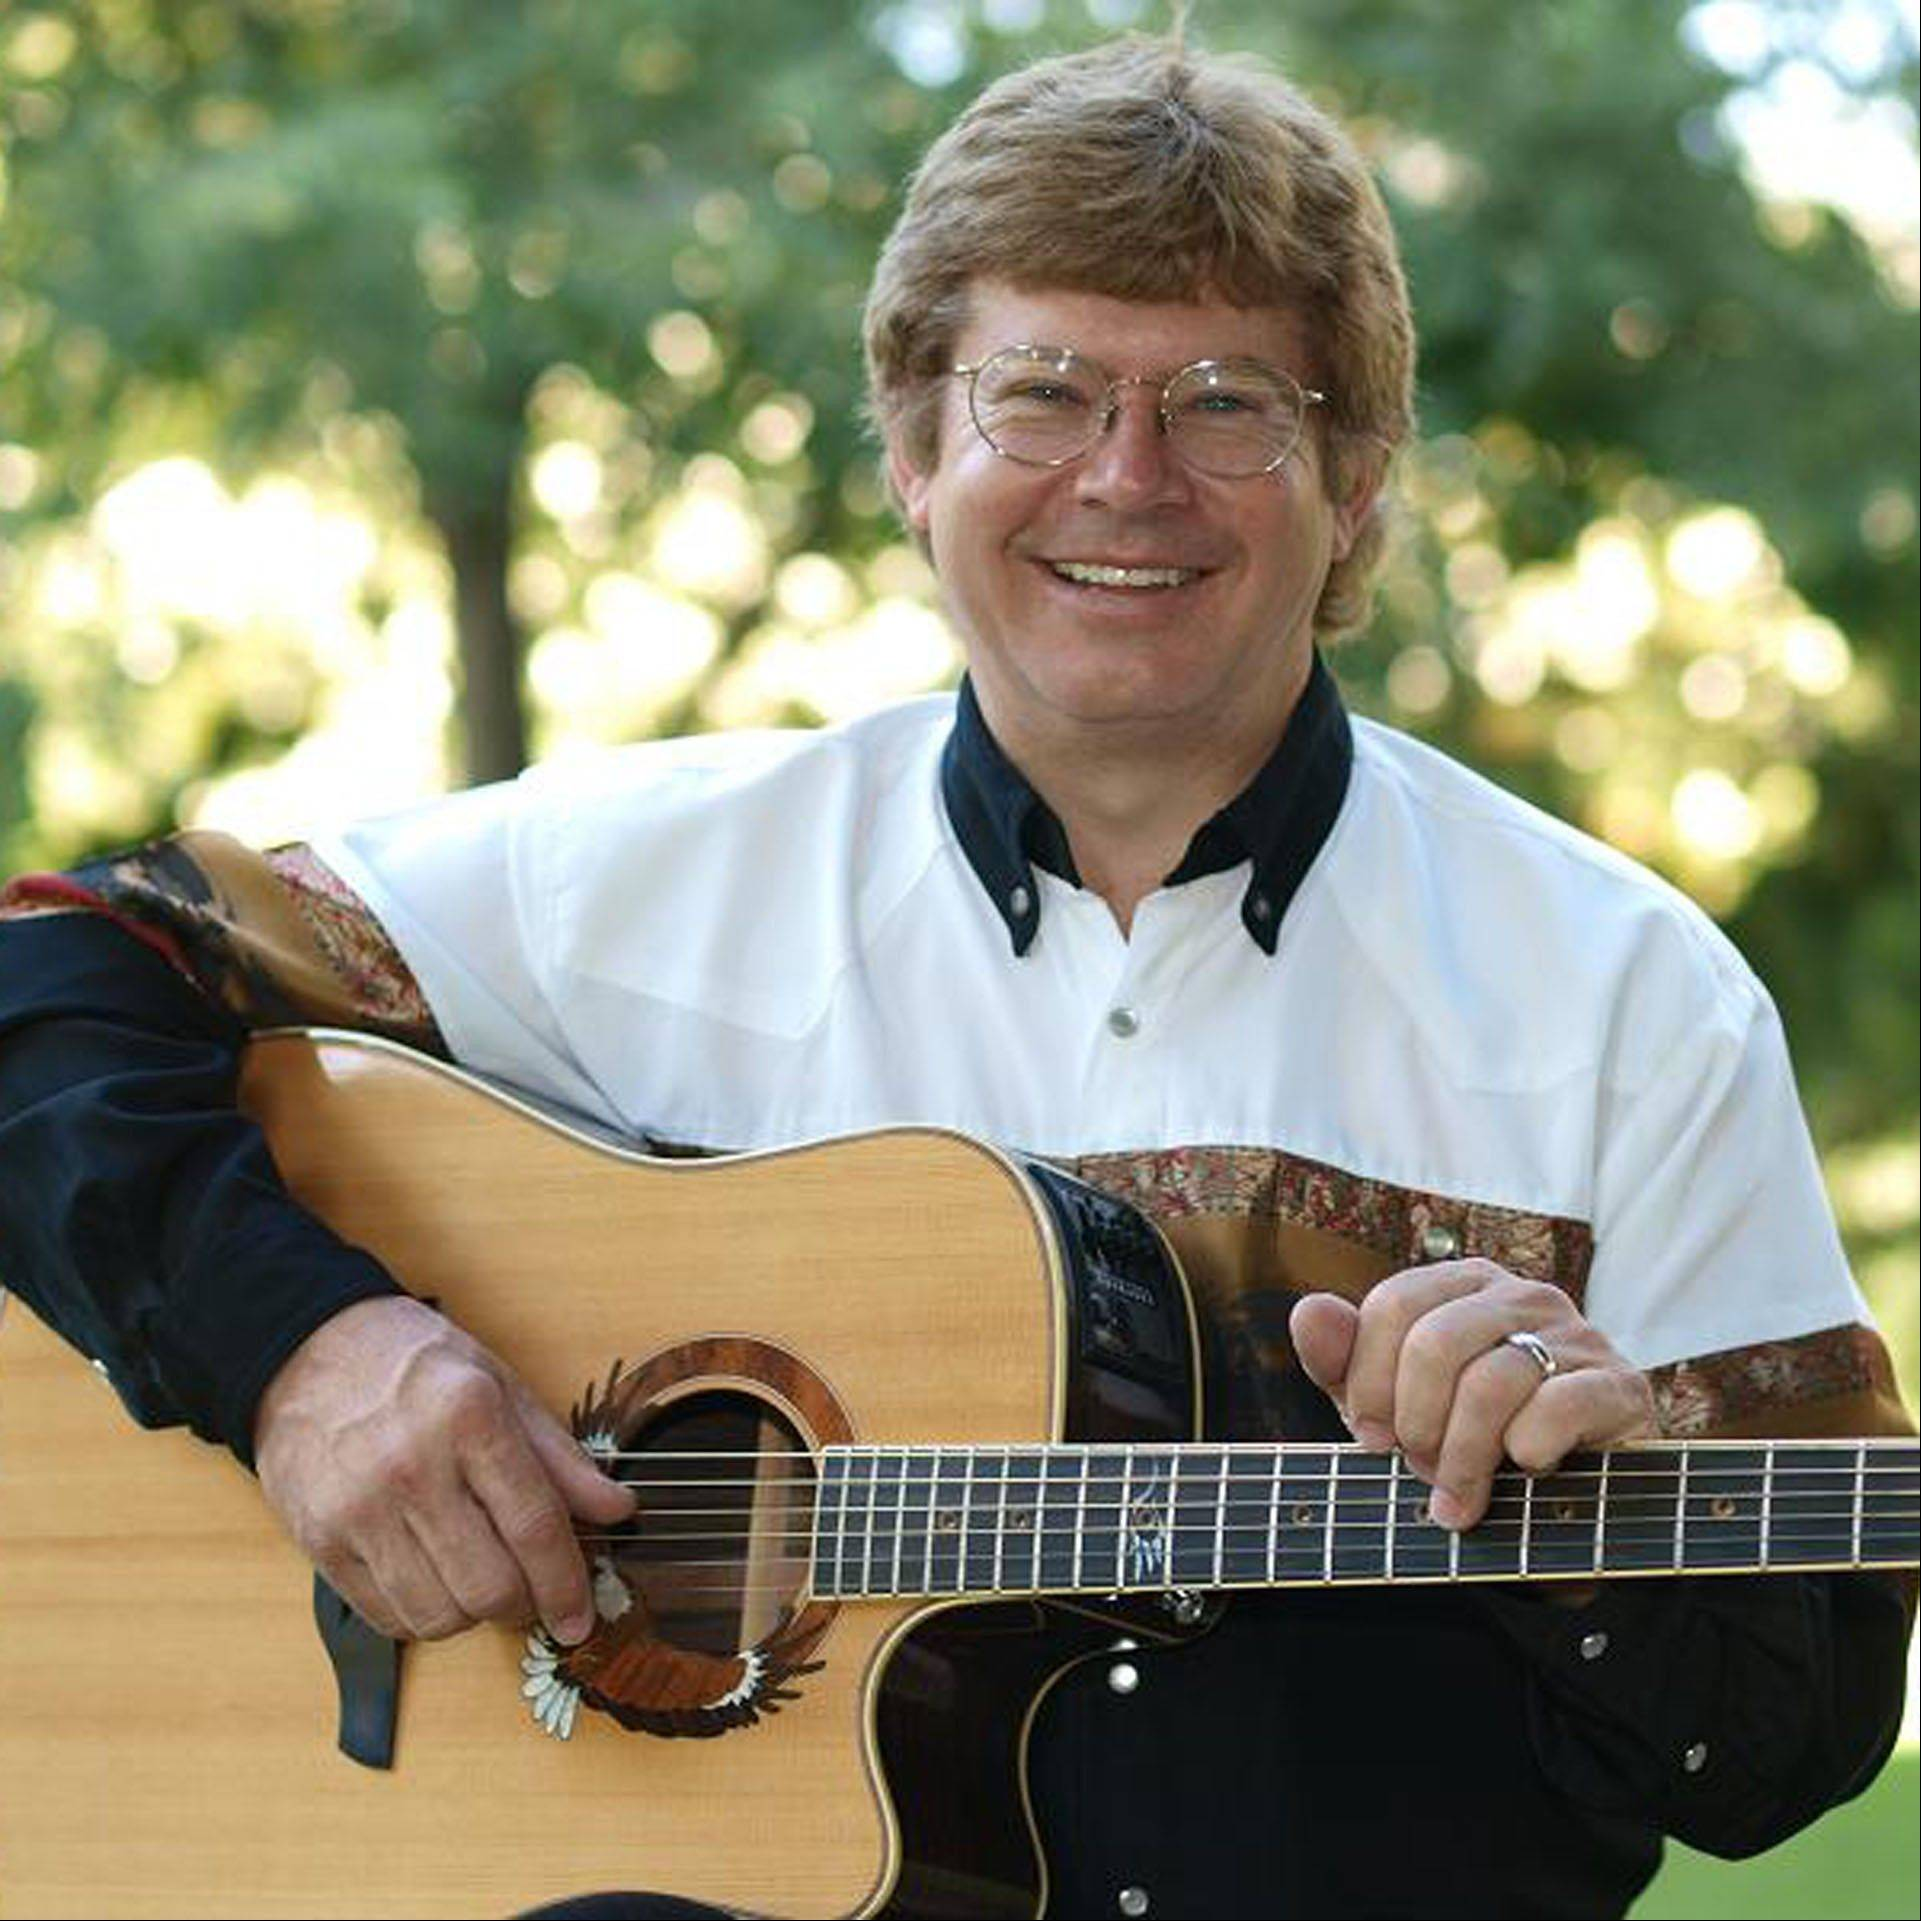 "Courtesy of Jim CurrySinger Jim Curry, pictured, presents a musical tribute to legendary recording artist John Denver with the ""Take Me Home: The Music of John Denver"" concert on Saturday, March 2, at the Metropolis Performing Arts Centre in Arlington Heights."